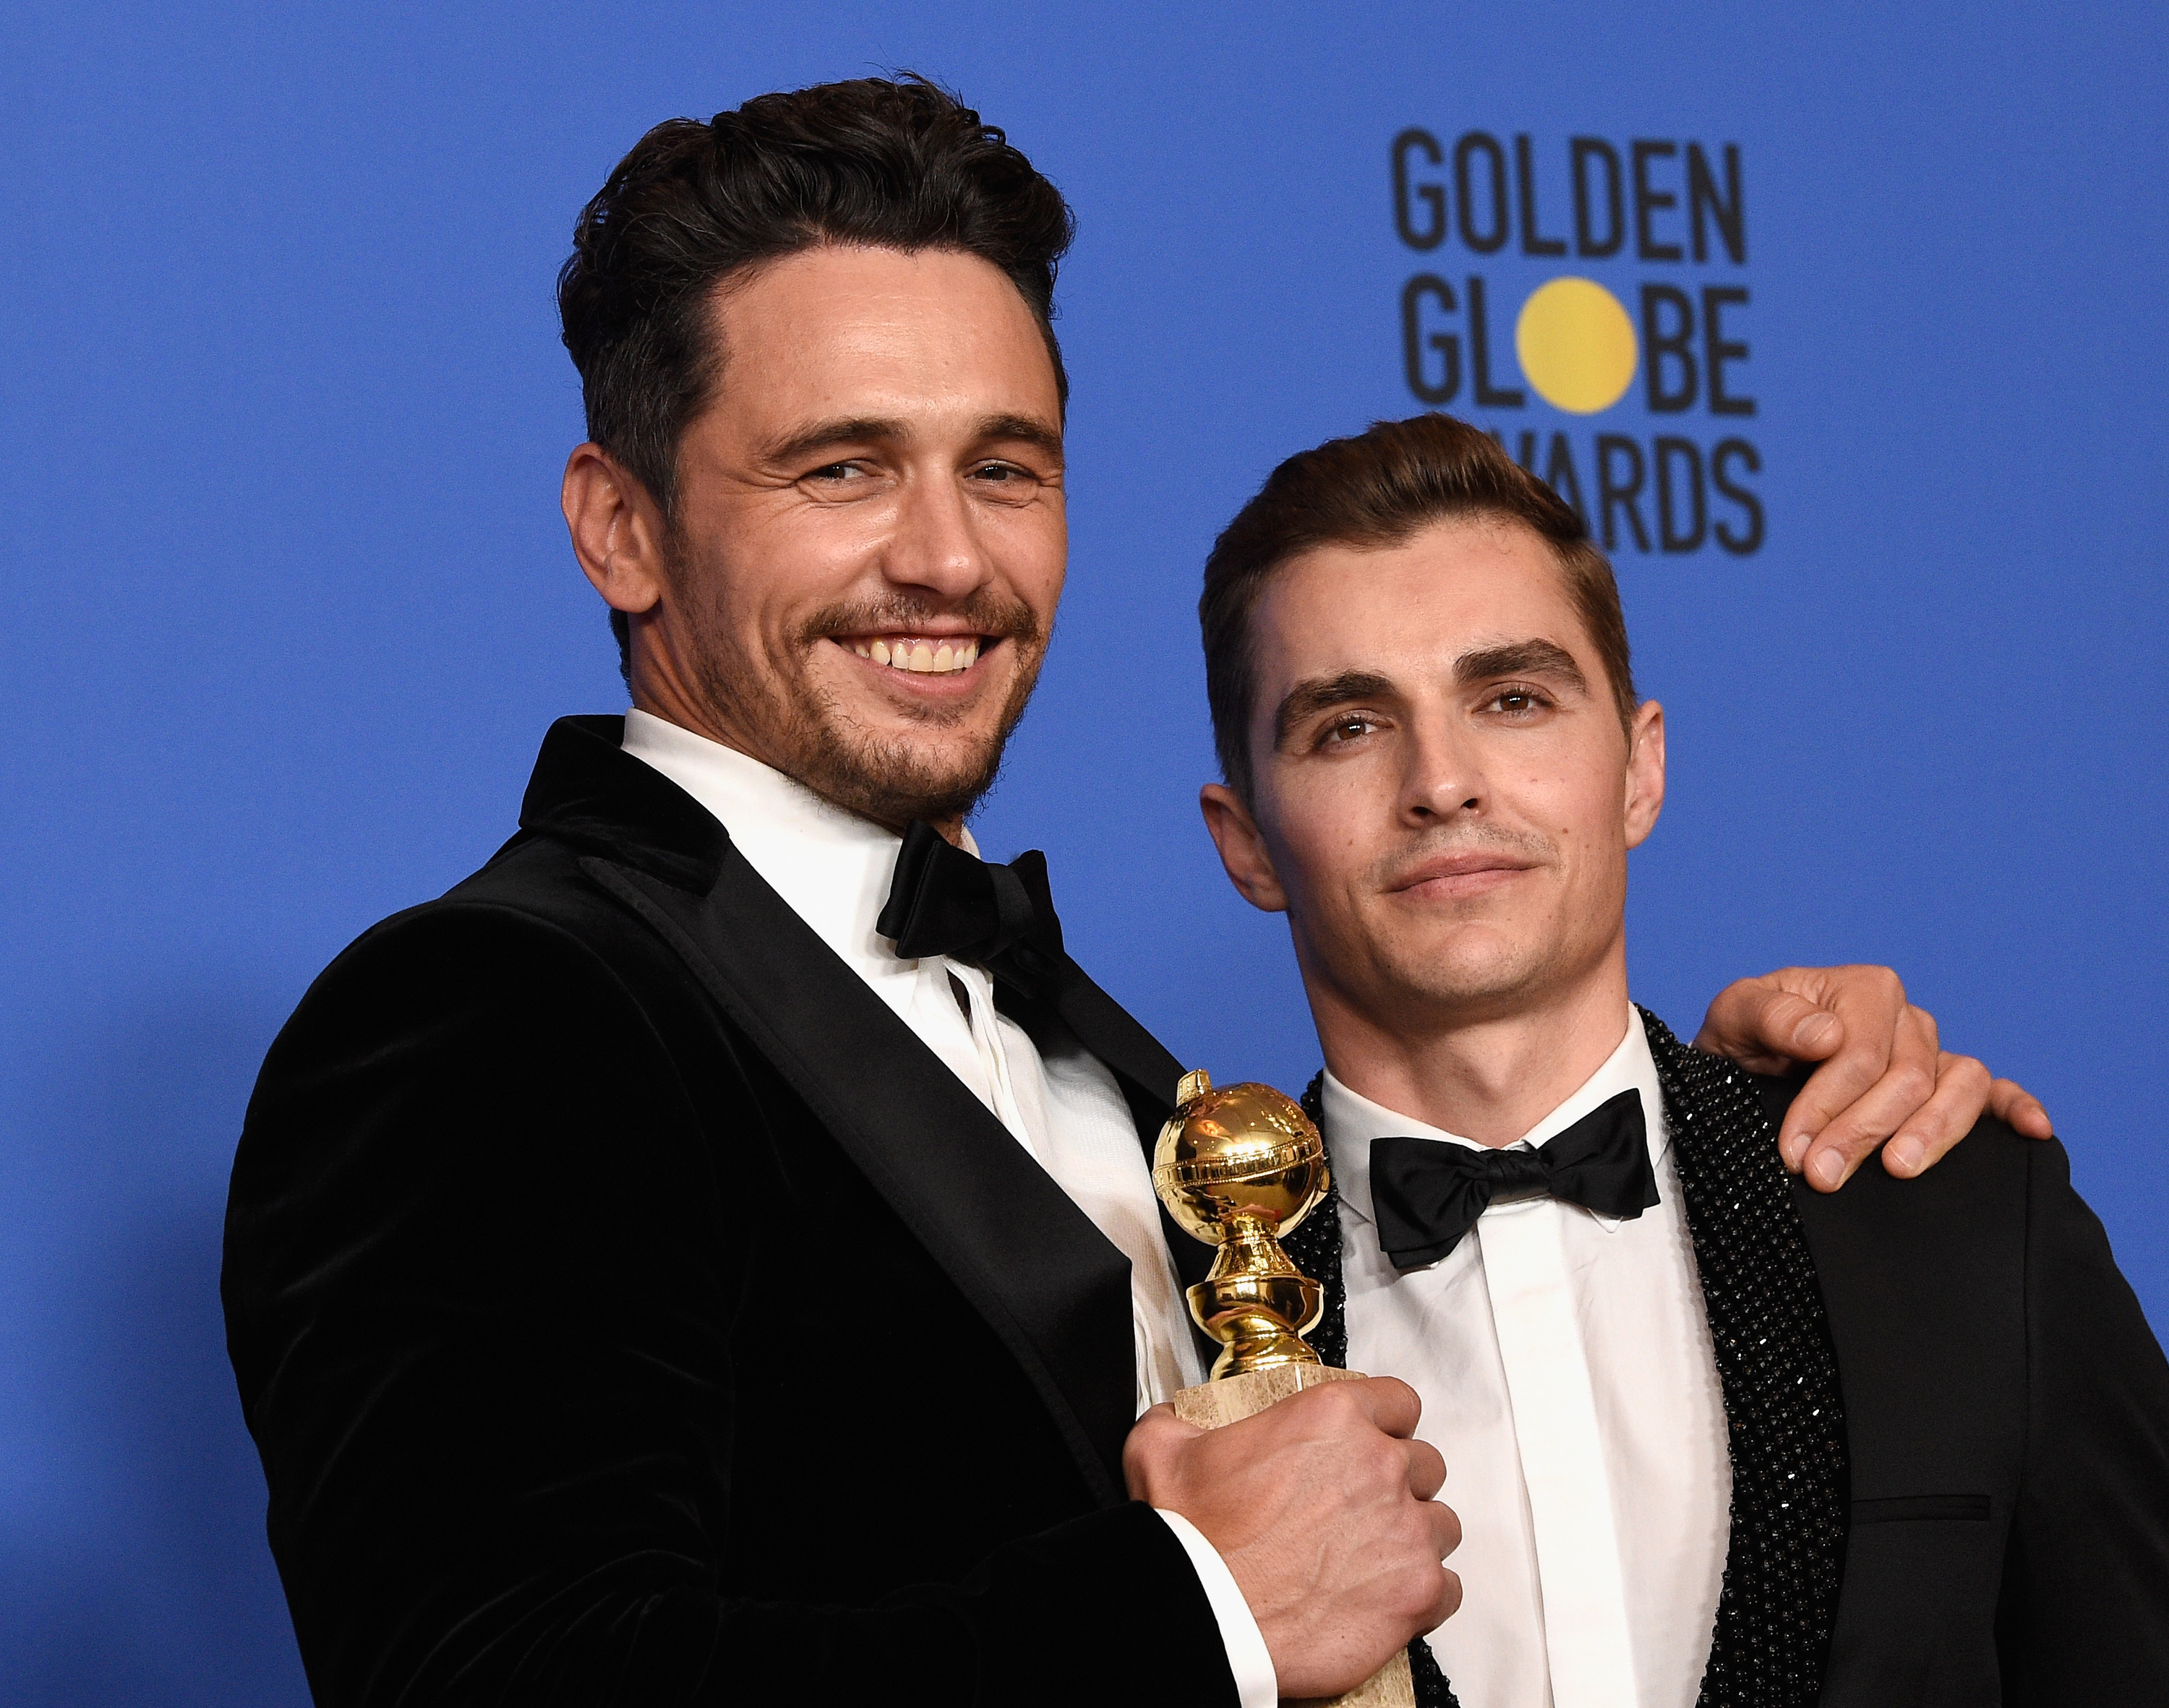 James Franco with his brither Dave Franco at the Golden Globes on Sunday